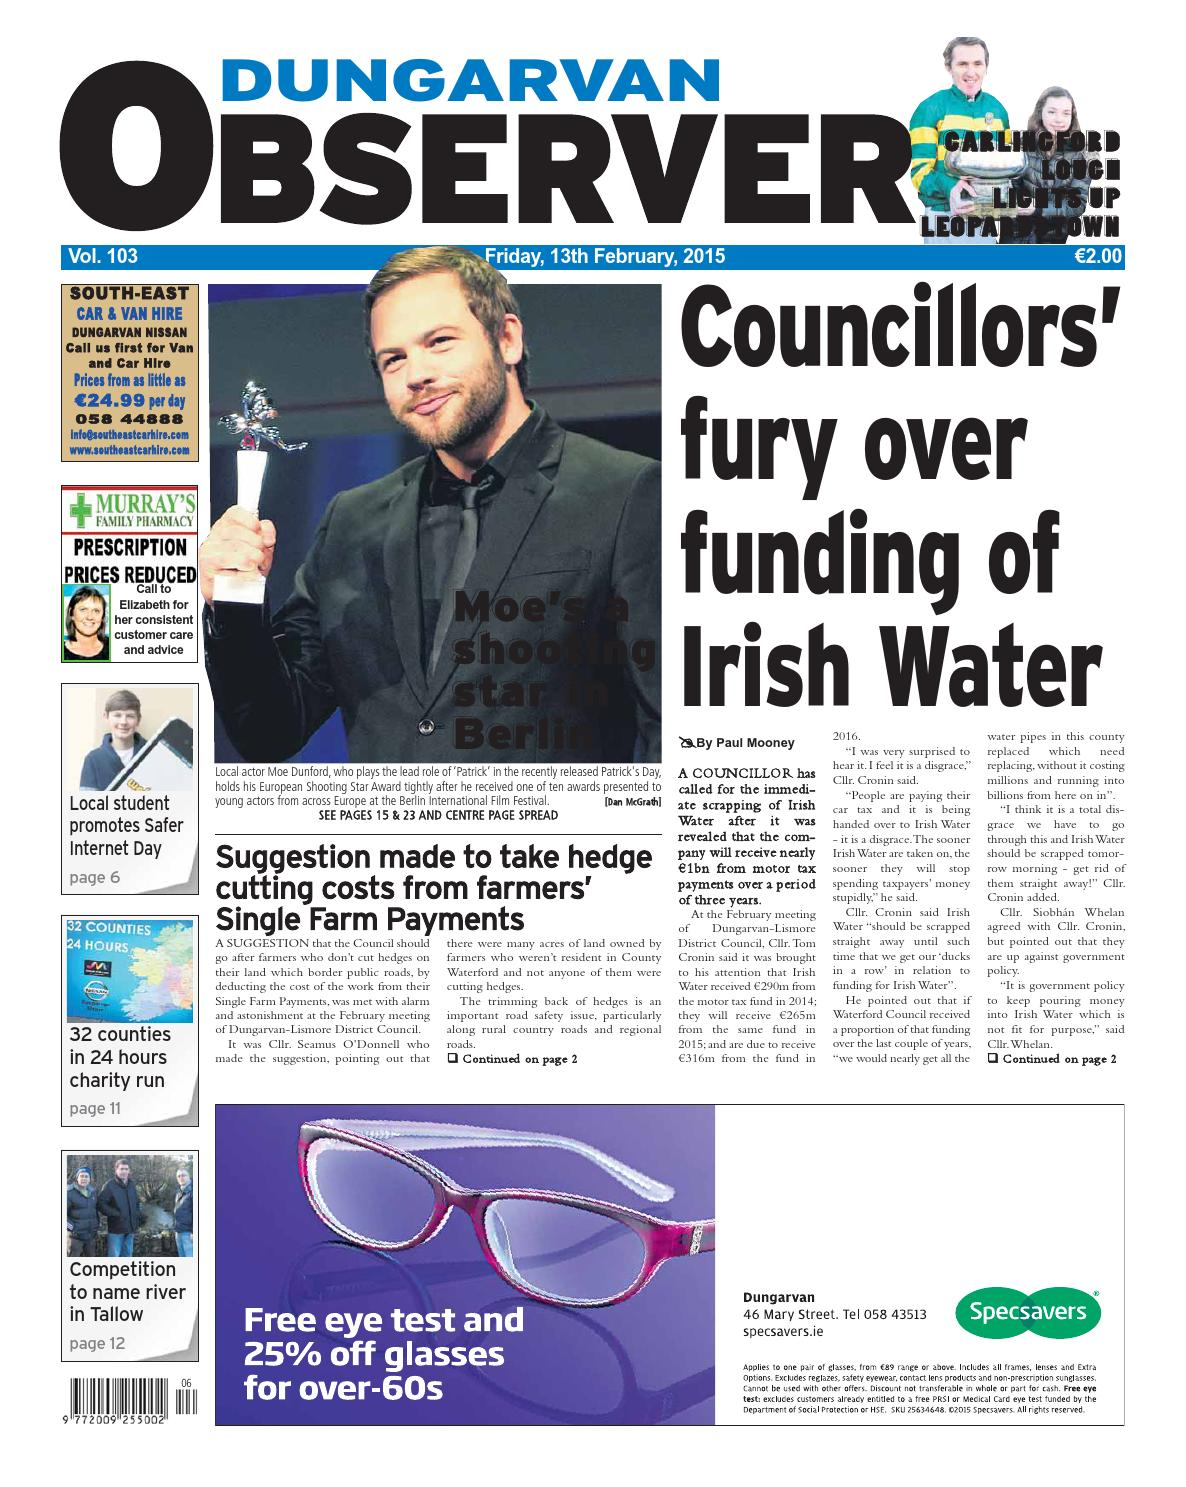 Dungarvan observer 20 11 2015 edition by Dungarvan - Issuu